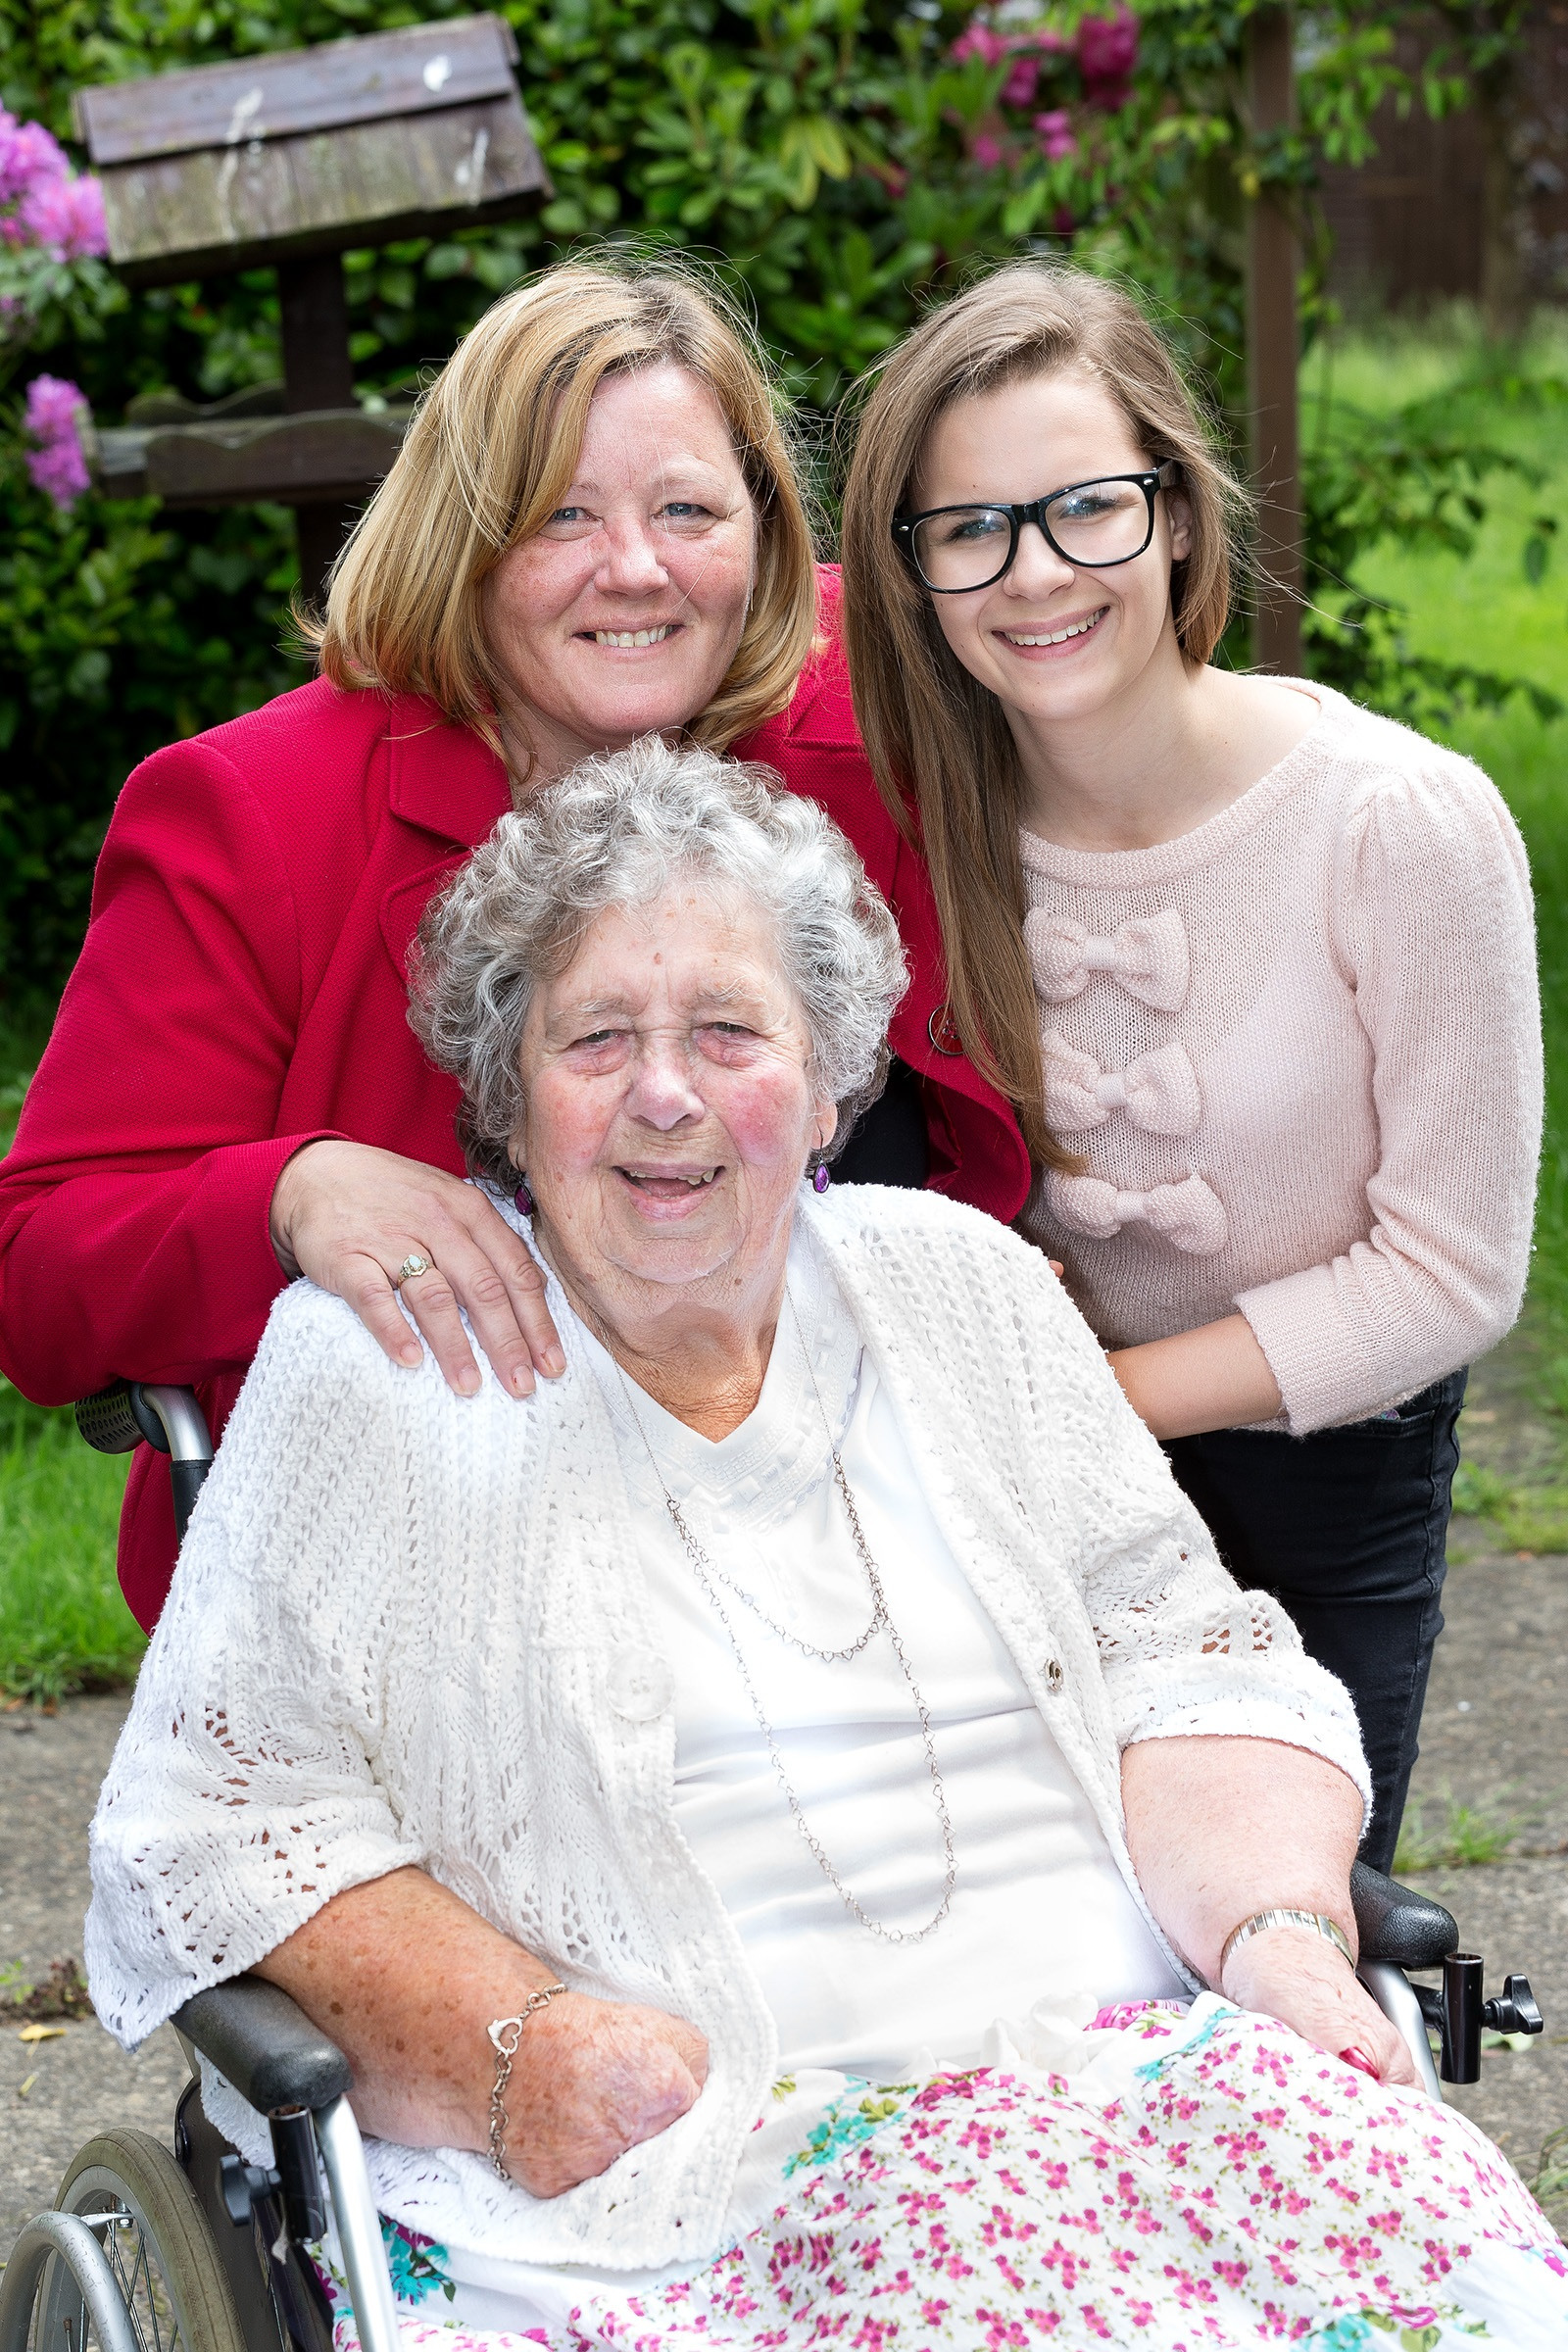 Sharon Dodson, Dengie Project Trust Manager, with volunteer Alice Bown, and Barbara Harris, 84, who uses the Knightswood Day Centre